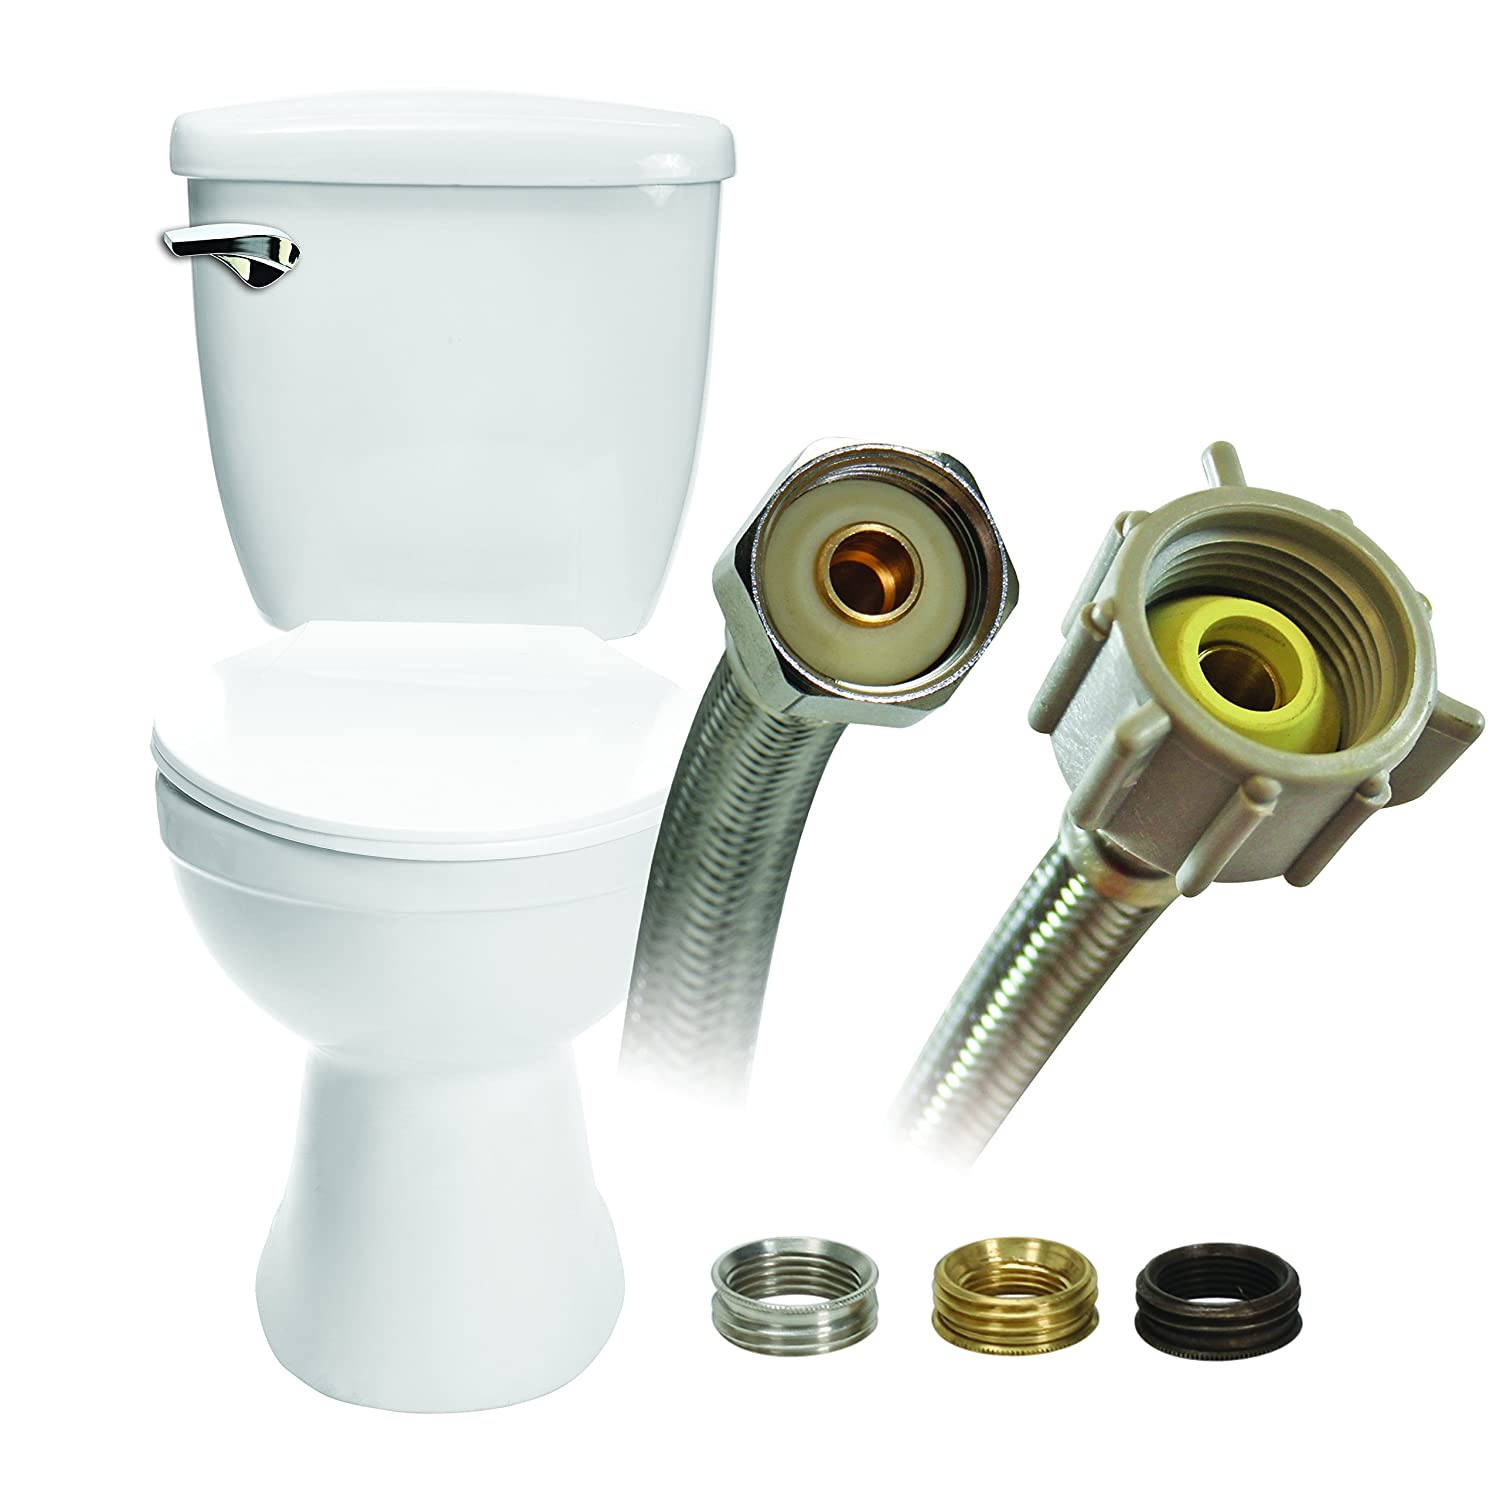 Fluidmaster B4T20U Toilet Connector With Size Adaptors, Braided Stainless  Steel - 3/8 Compression, 7/16 Compression, 1/2 Compression, or 1/2 FIP